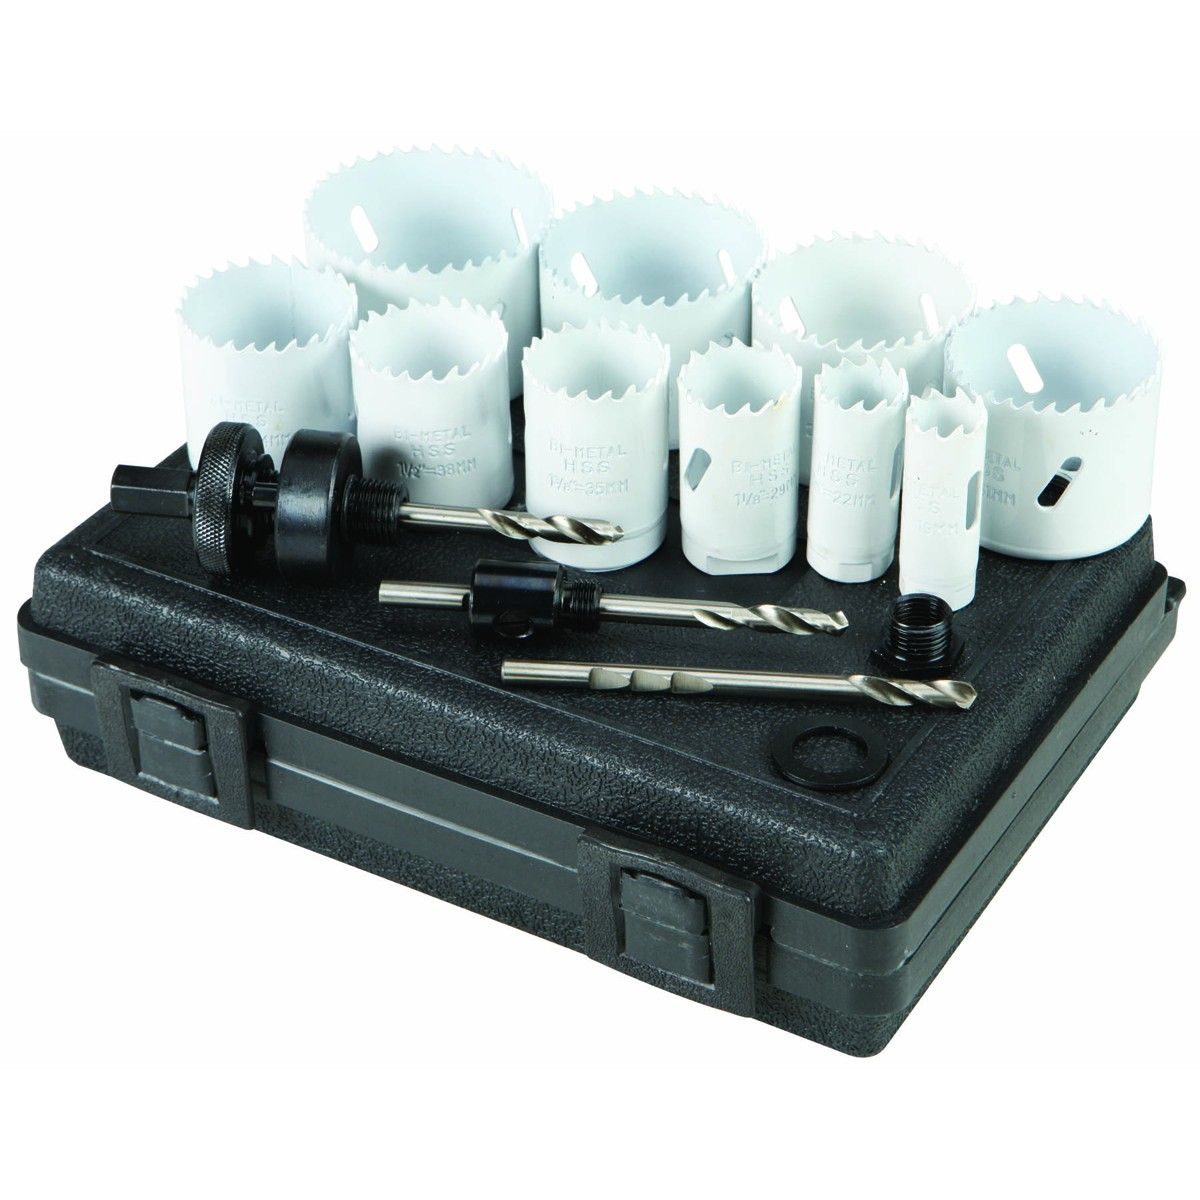 3 4 In 2 1 2 In Bi Metal Hole Saw Assorted Set 14 Pc Hole Saw